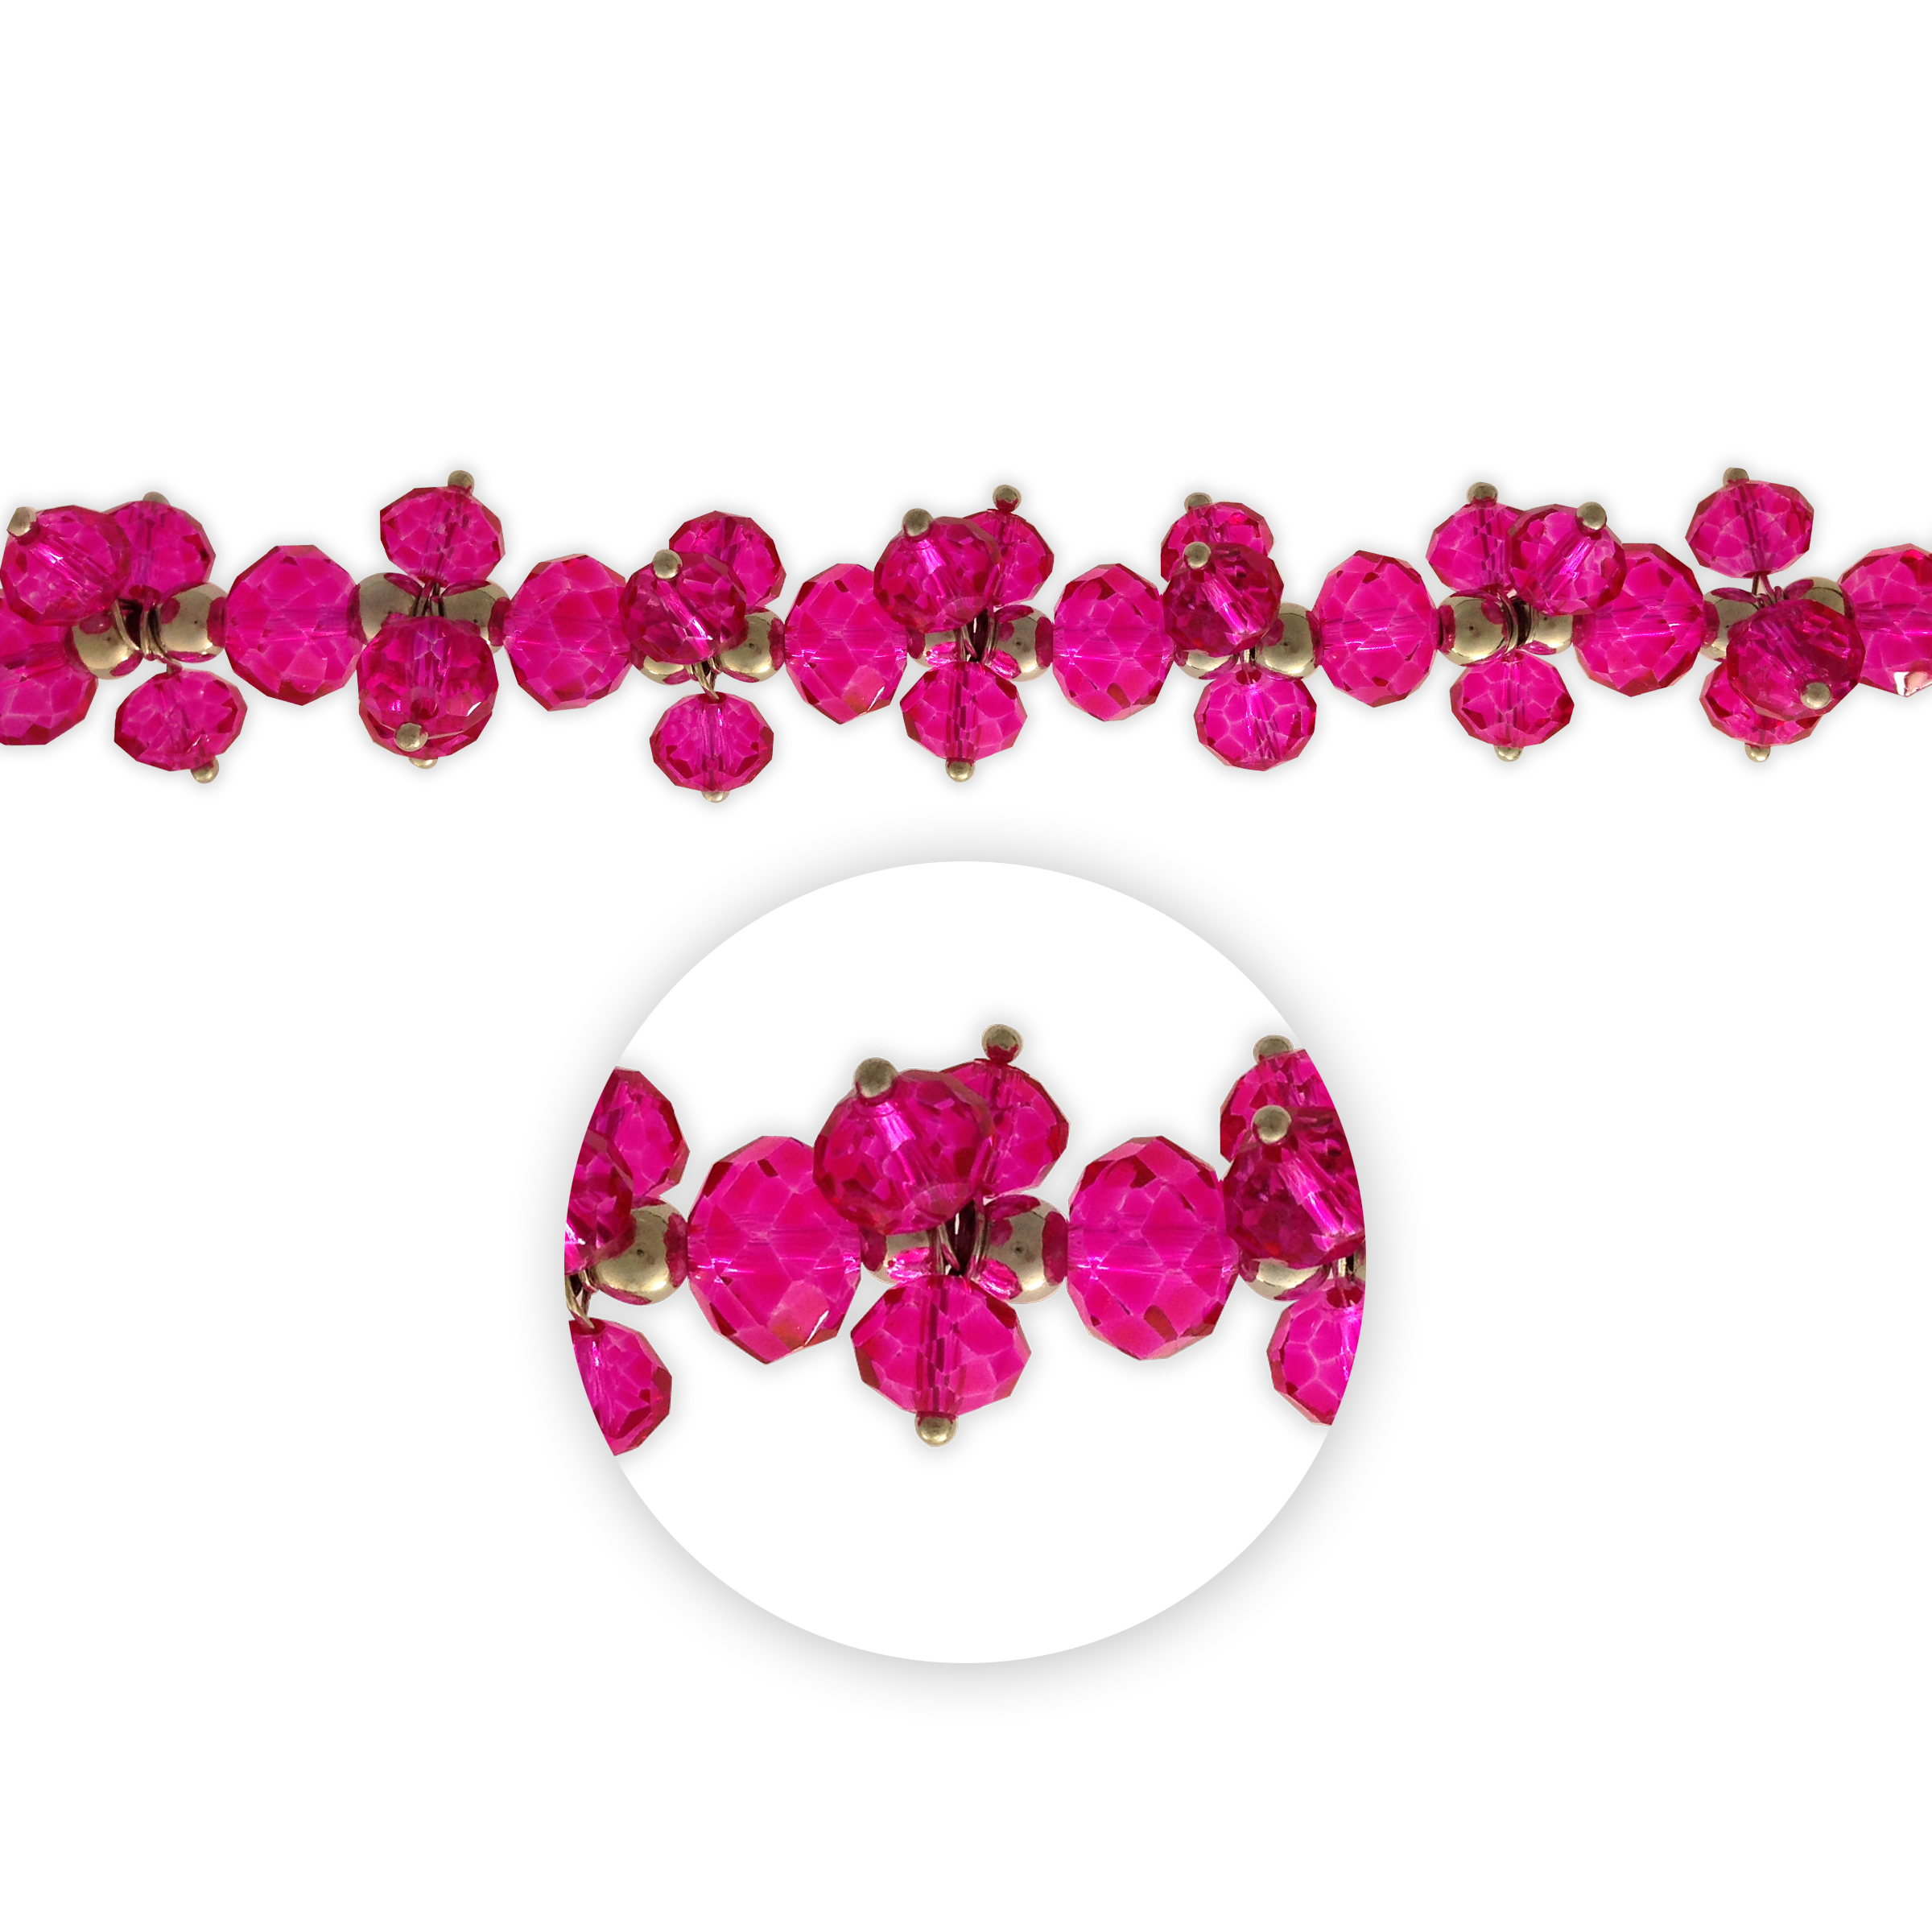 Blue Moon Beads 7\u0022 Crystal Strand, Dangles, Fuchsia